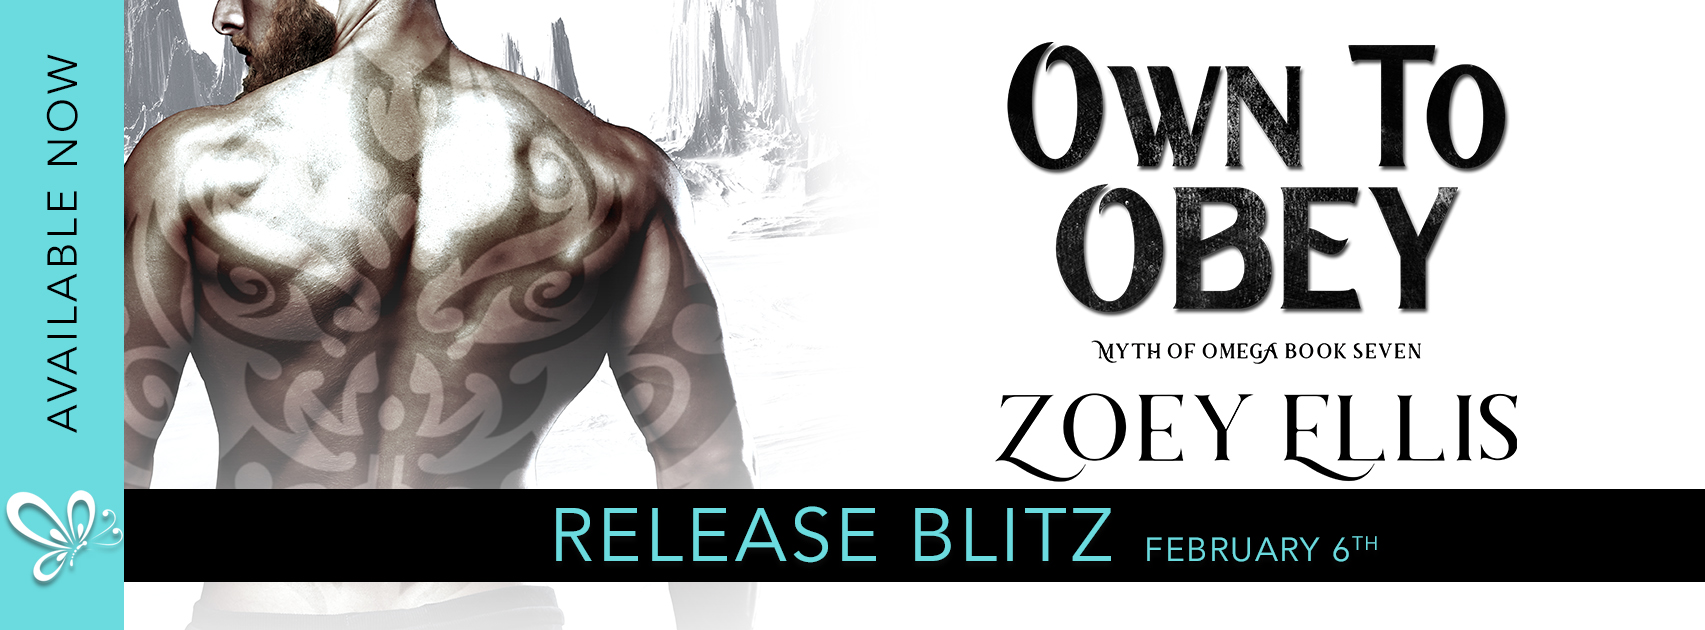 Own to Obey - RB banner.jpg